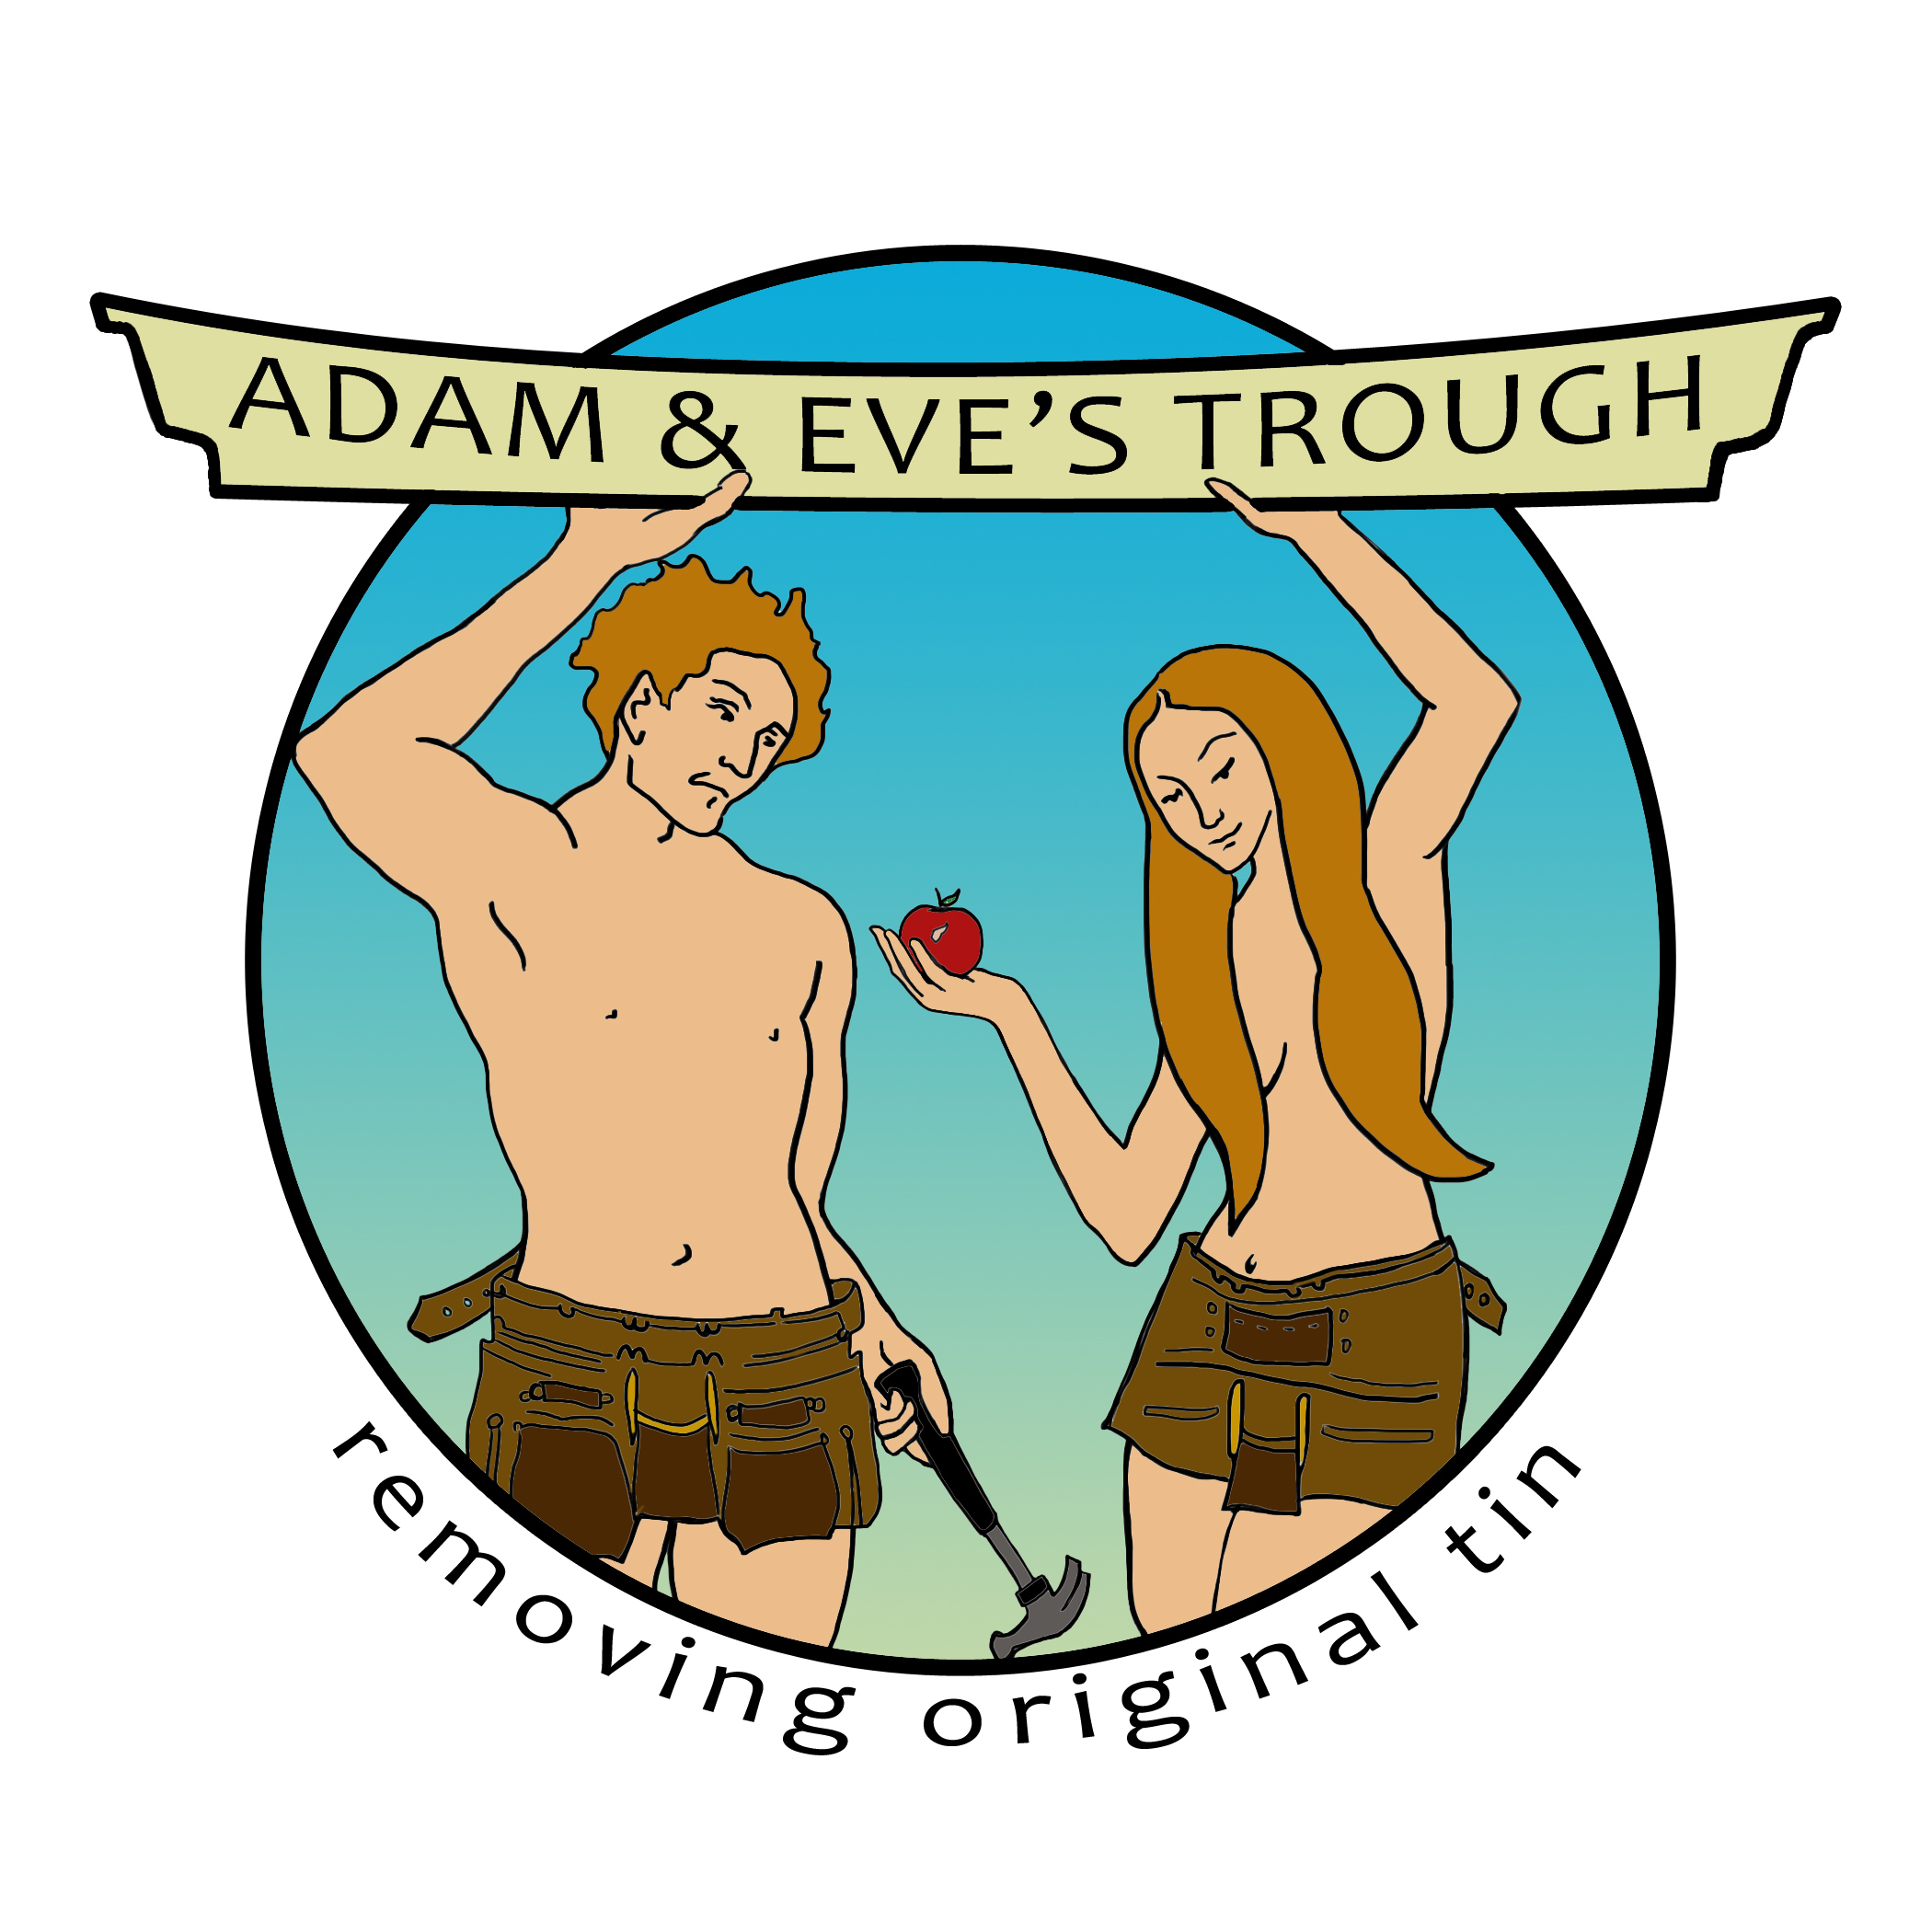 Adam & Eve's Trough